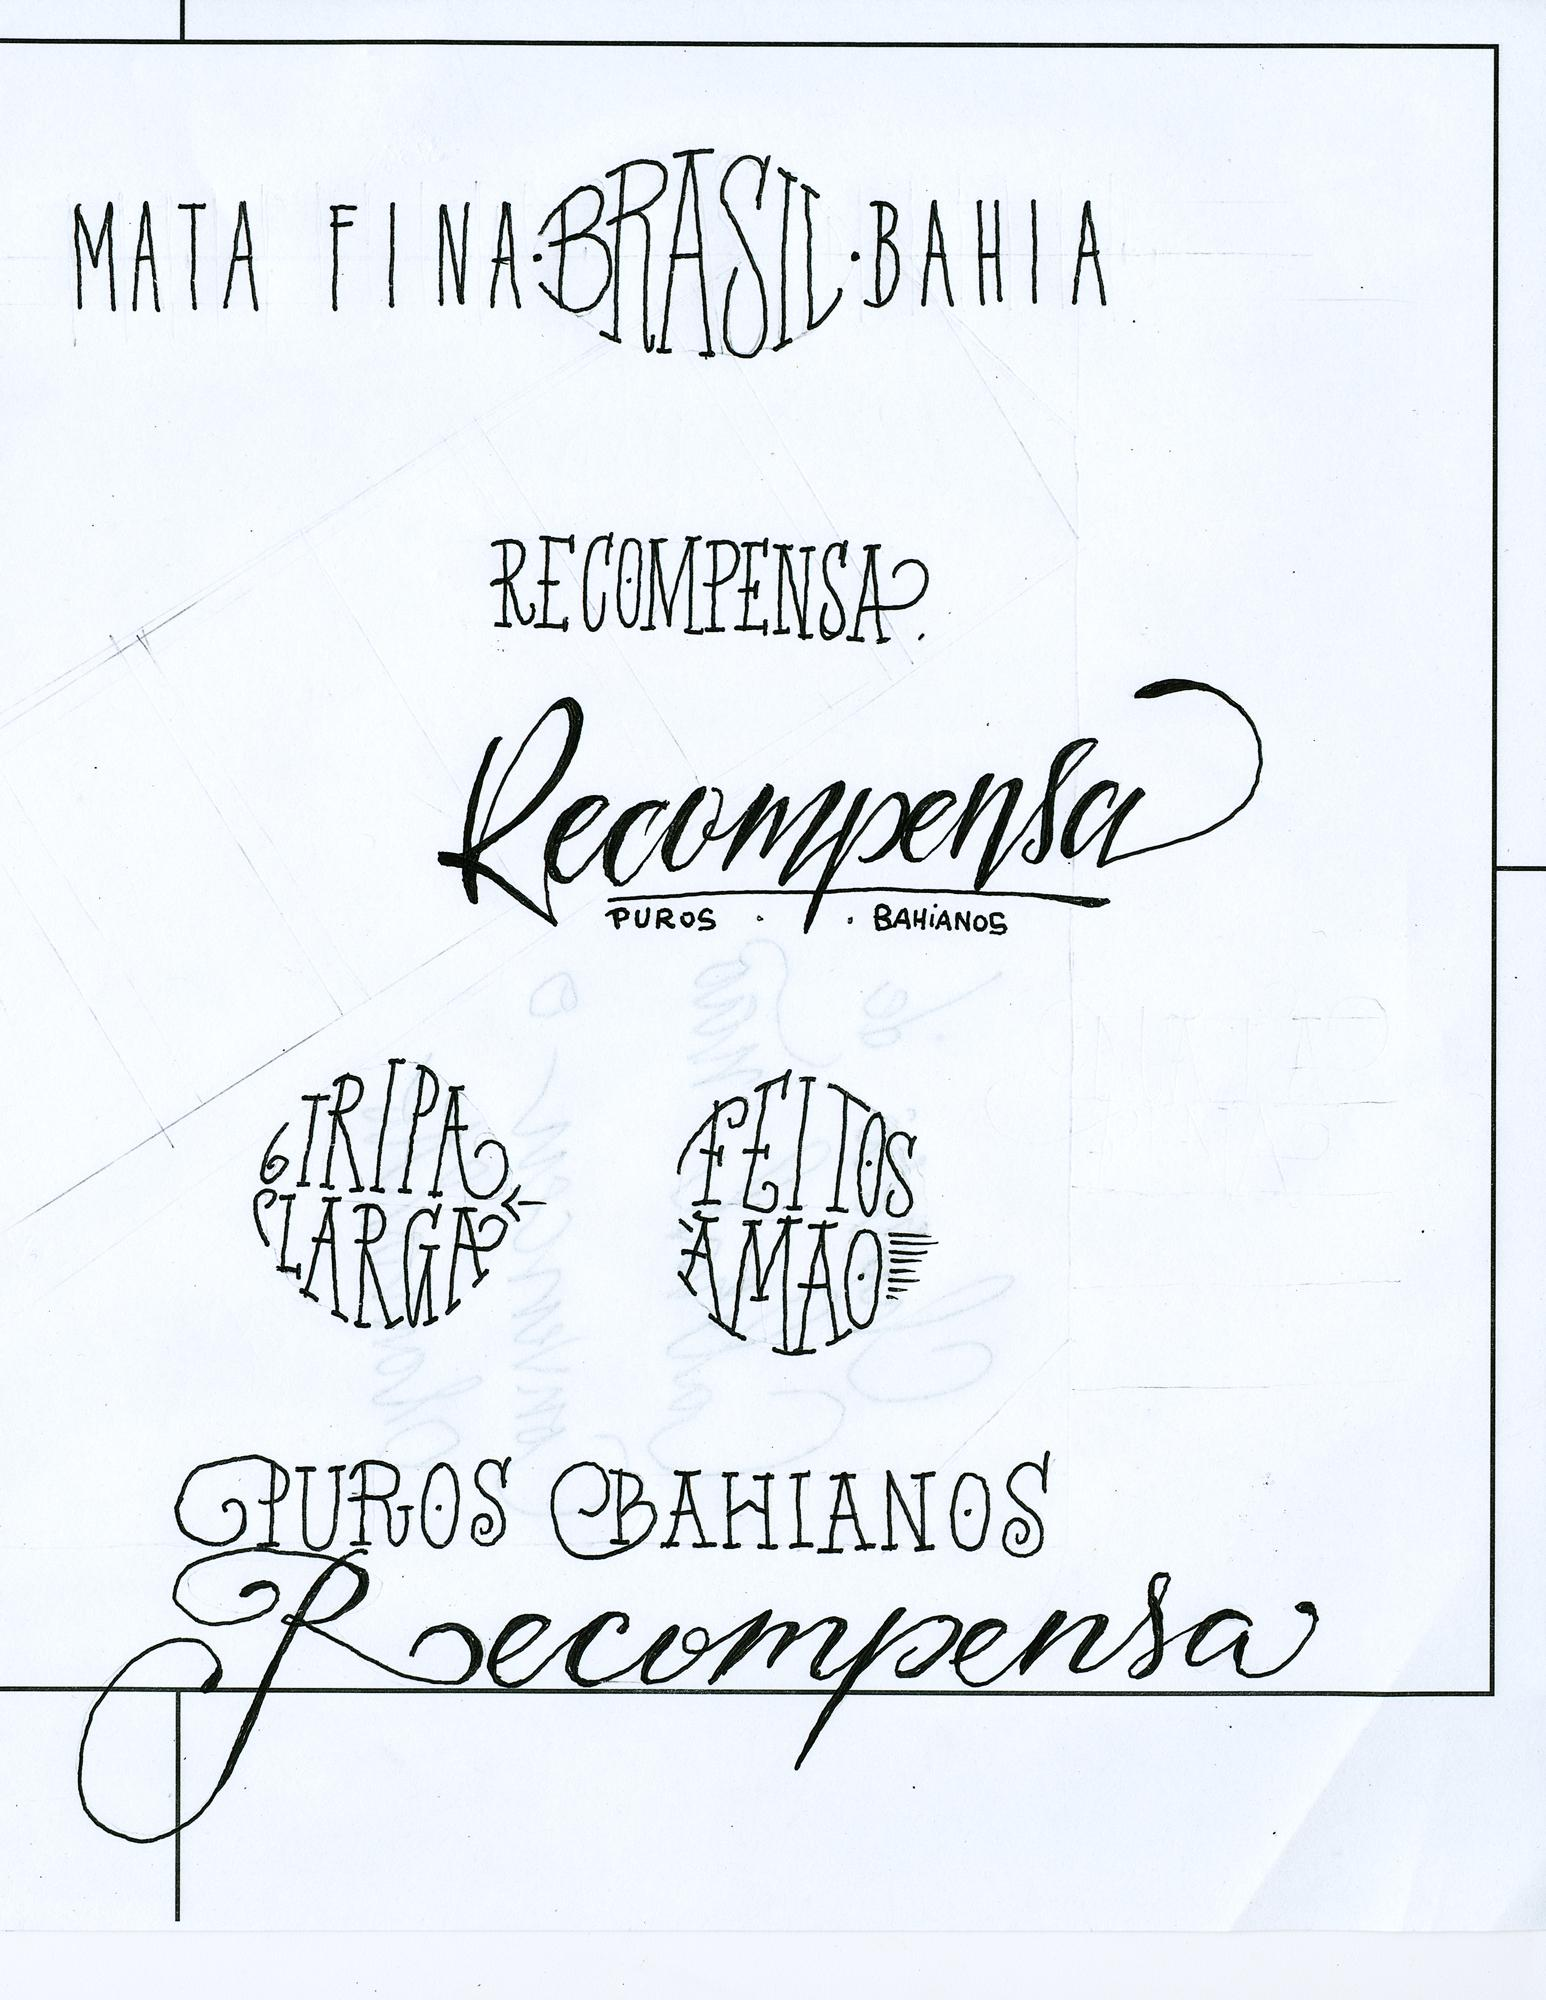 Recompensa Cigars - image 3 - student project